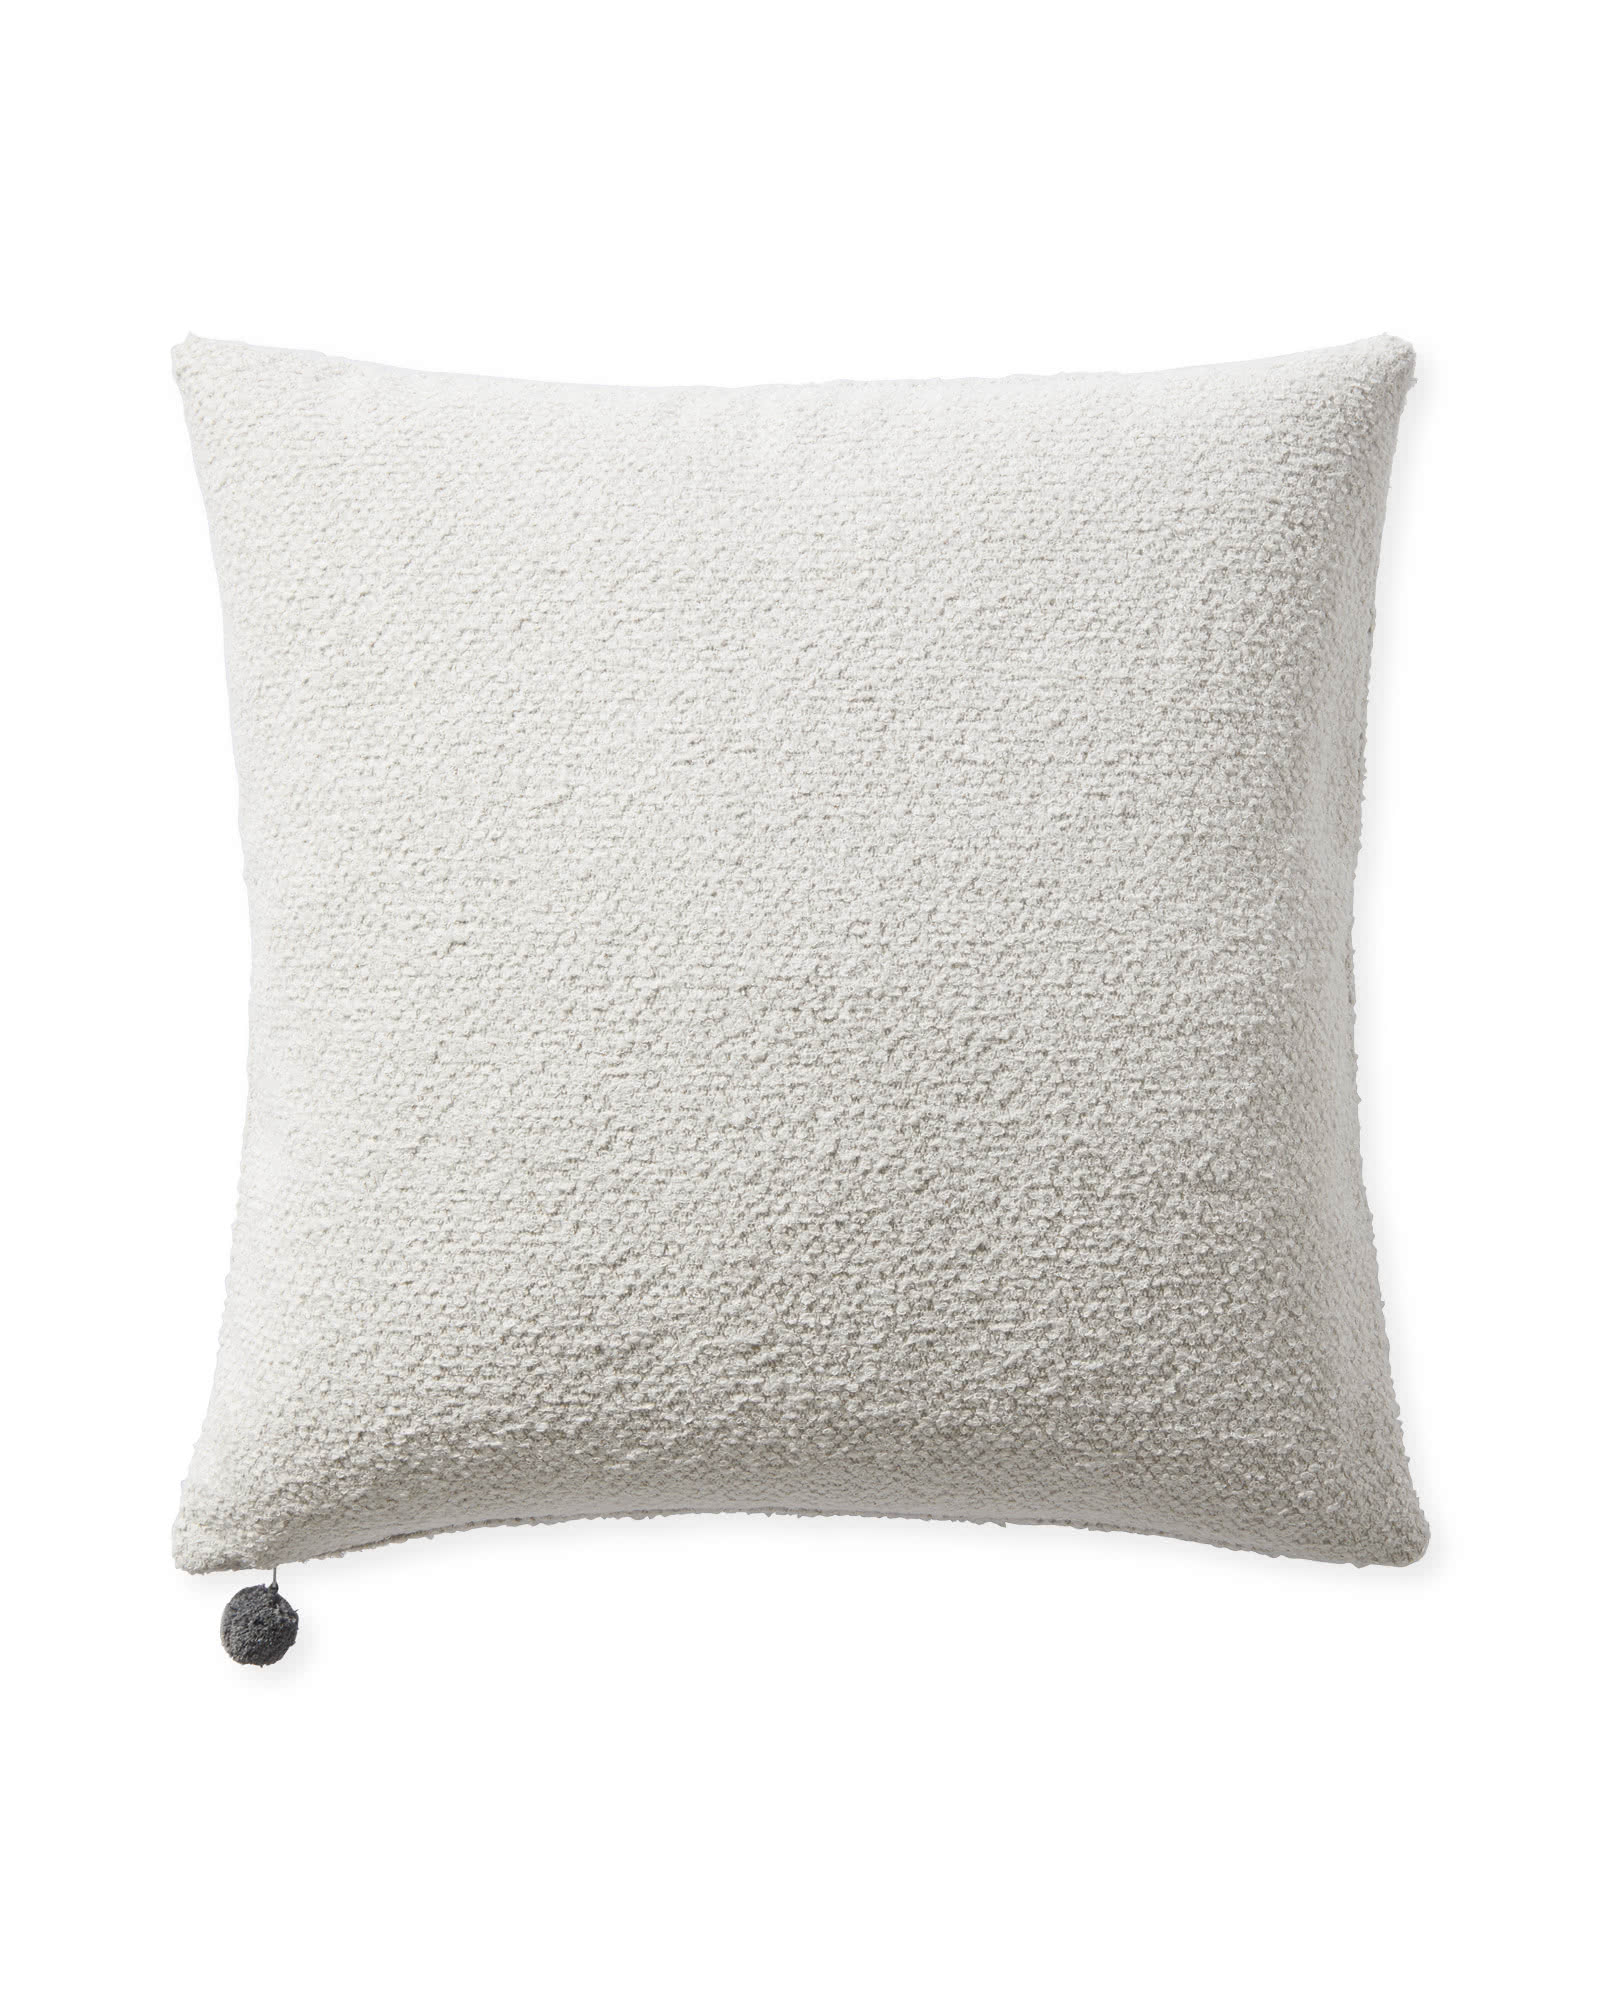 Perennials® Textured Loop Pillow Cover, Ivory